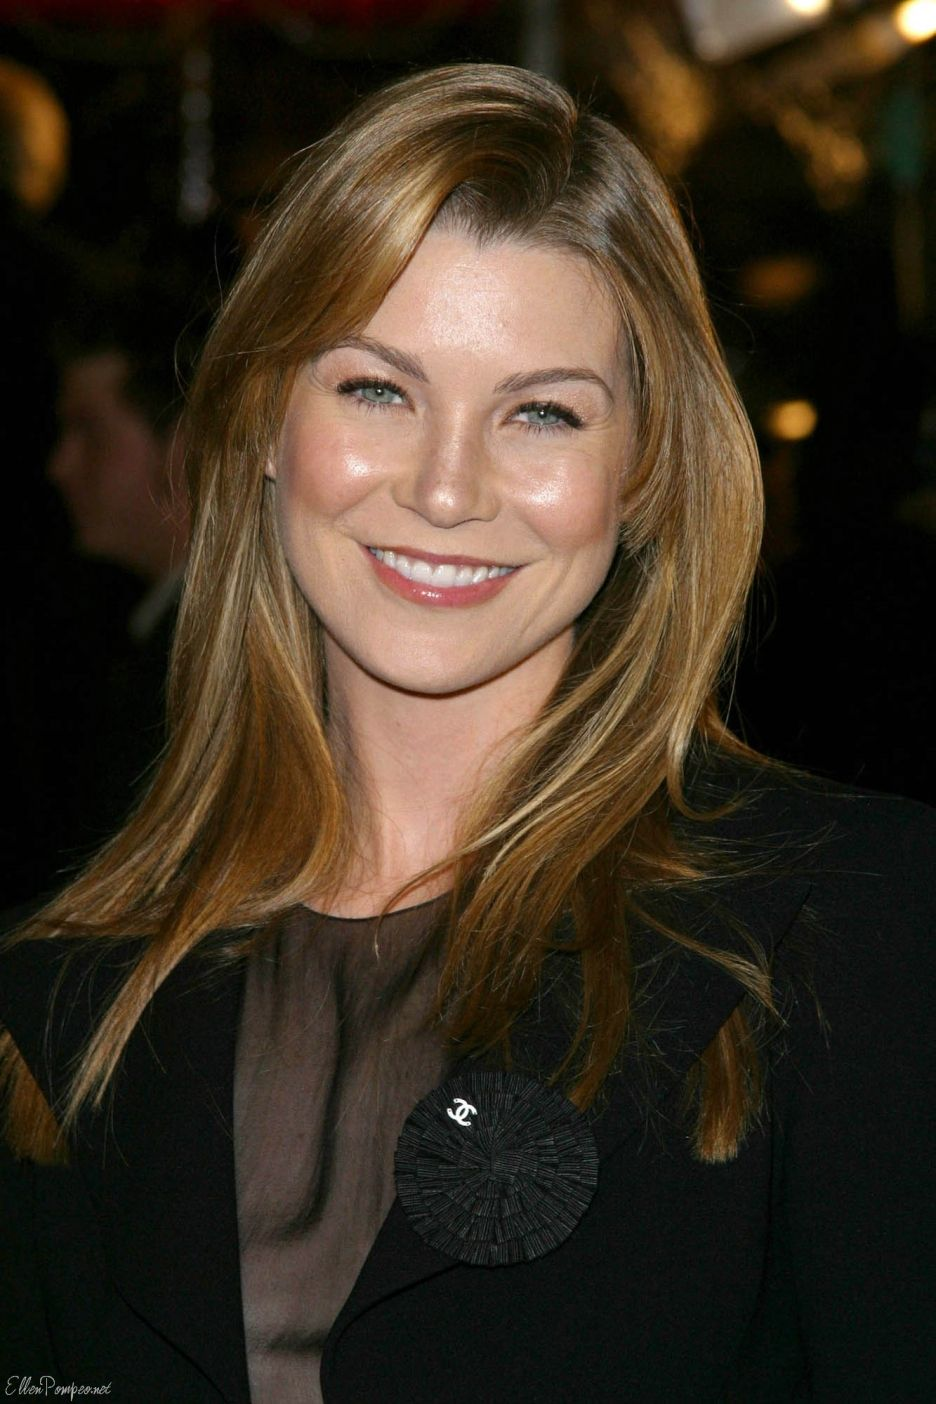 ellen pompeo husbandellen pompeo husband, ellen pompeo wiki, ellen pompeo 2017, ellen pompeo vk, ellen pompeo house, ellen pompeo insta, ellen pompeo son, ellen pompeo director, ellen pompeo tumblr, ellen pompeo and justin chambers, ellen pompeo and jake gyllenhaal, ellen pompeo style, ellen pompeo and sandra oh, ellen pompeo salary, ellen pompeo toes, ellen pompeo gif hunt, ellen pompeo facts, ellen pompeo news, ellen pompeo i, ellen pompeo earnings